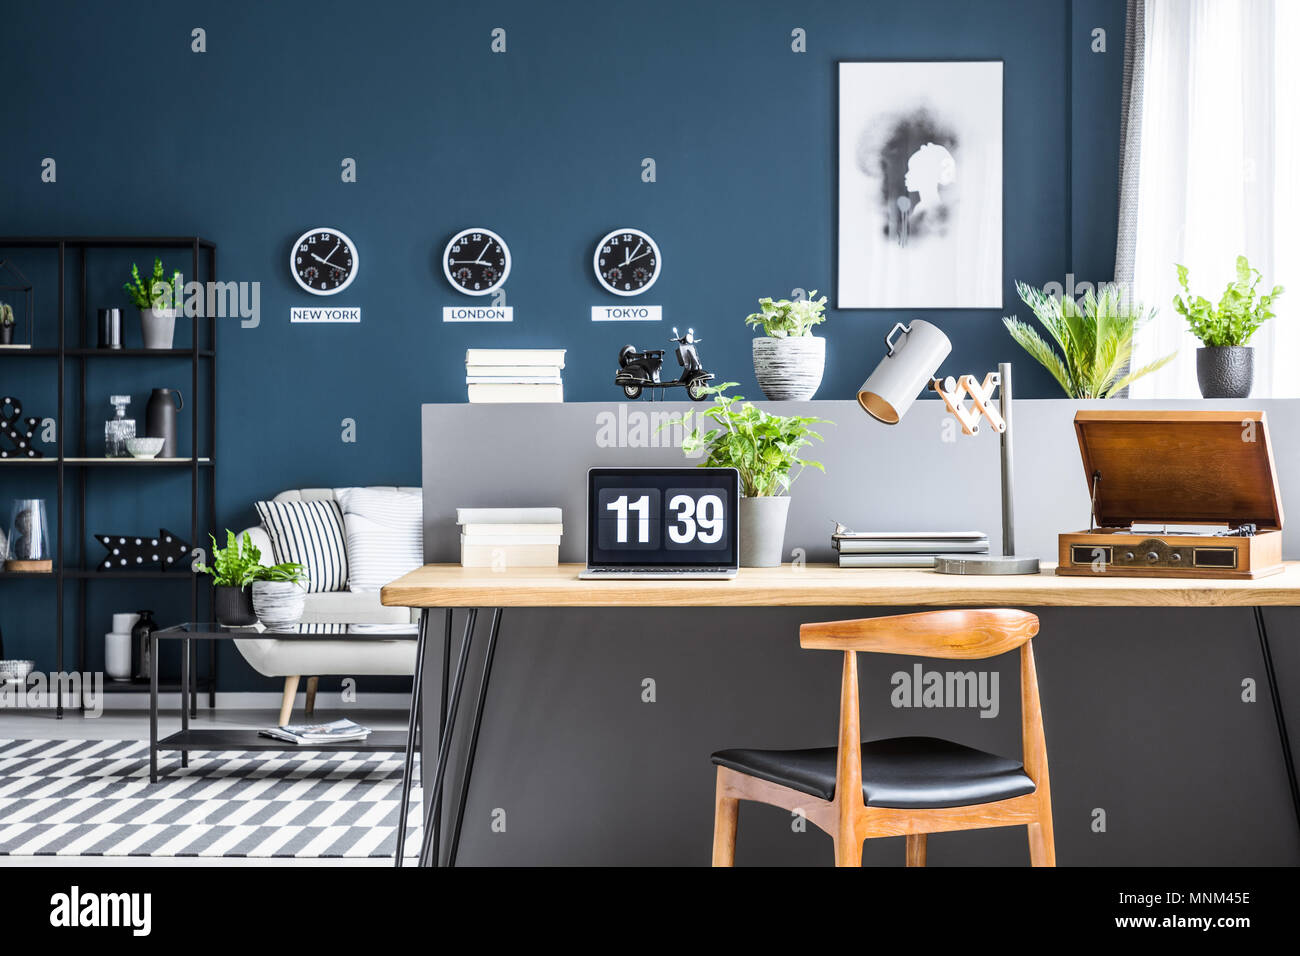 Dark Blue Living Room Interior With Black Industrial Racks And Stylish Workspace By A Gray Half